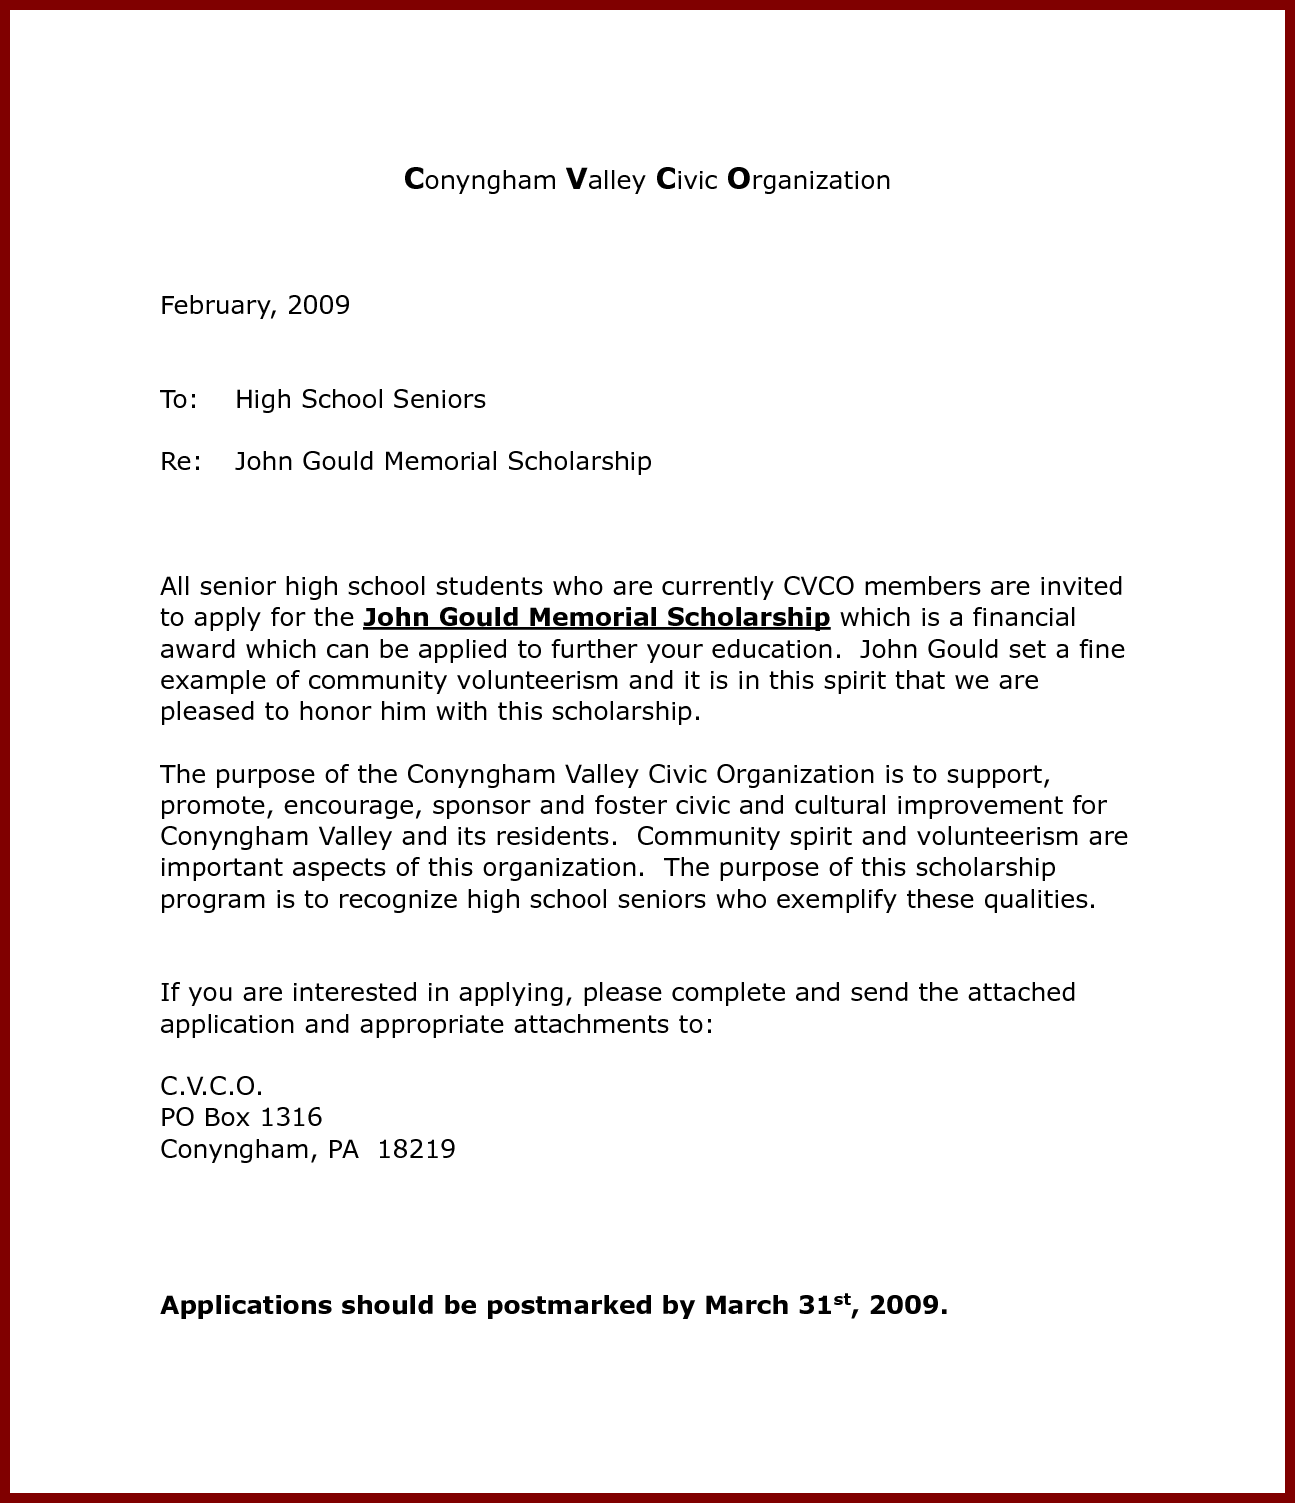 sample cover letters for government jobs letter samples | Home ...